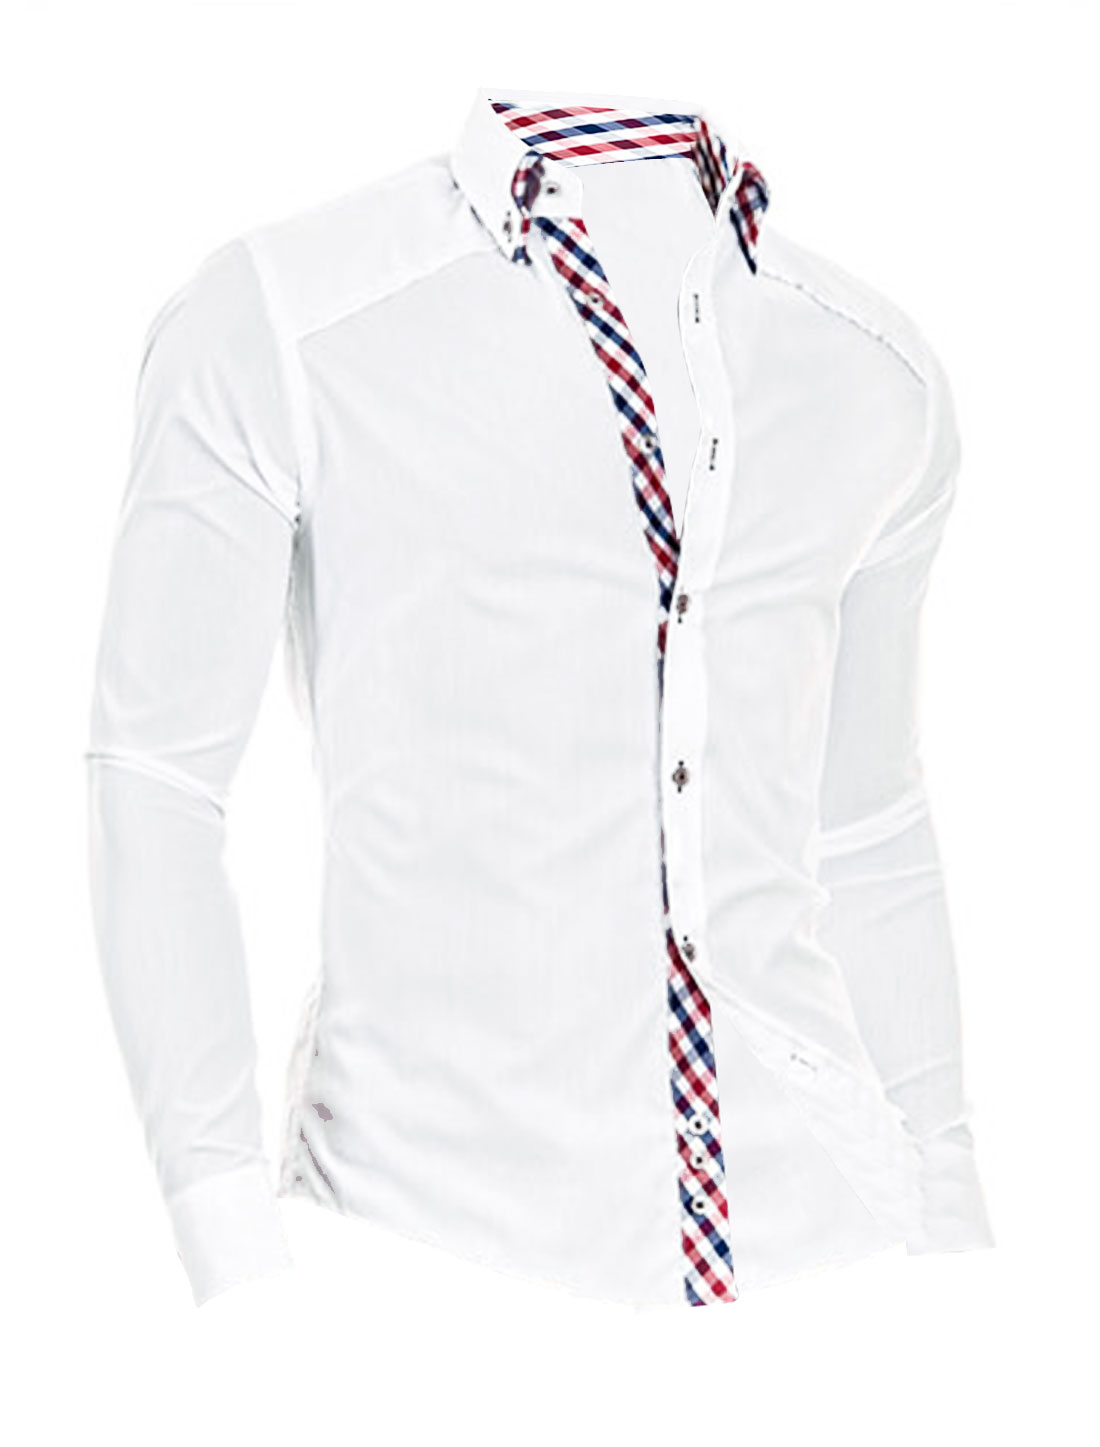 Men Tiered Point Collar Long Sleeve Button Closure NEW Shirt White M